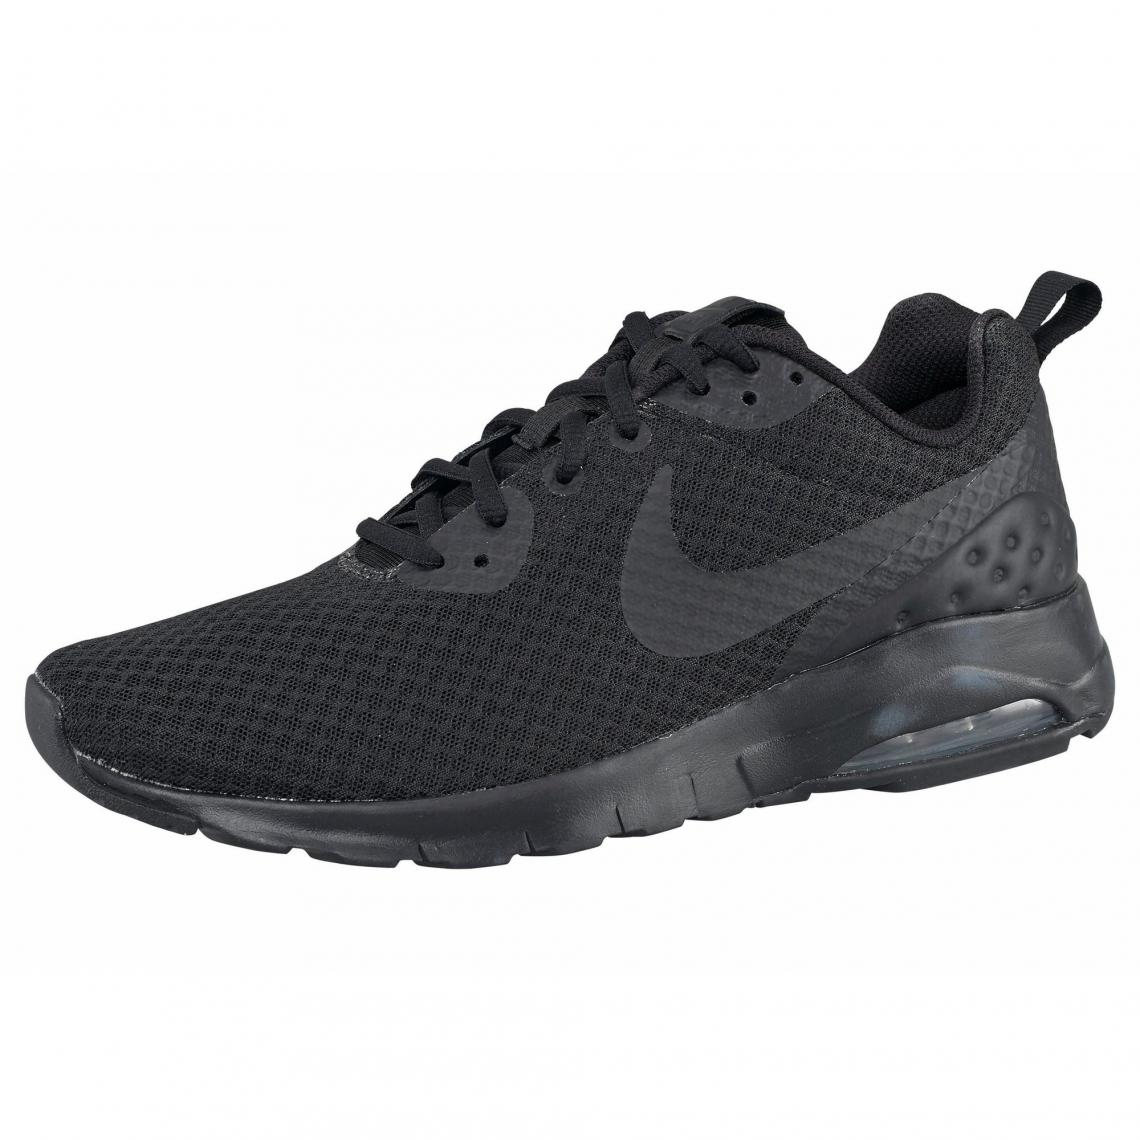 3 suisses nike air max homme